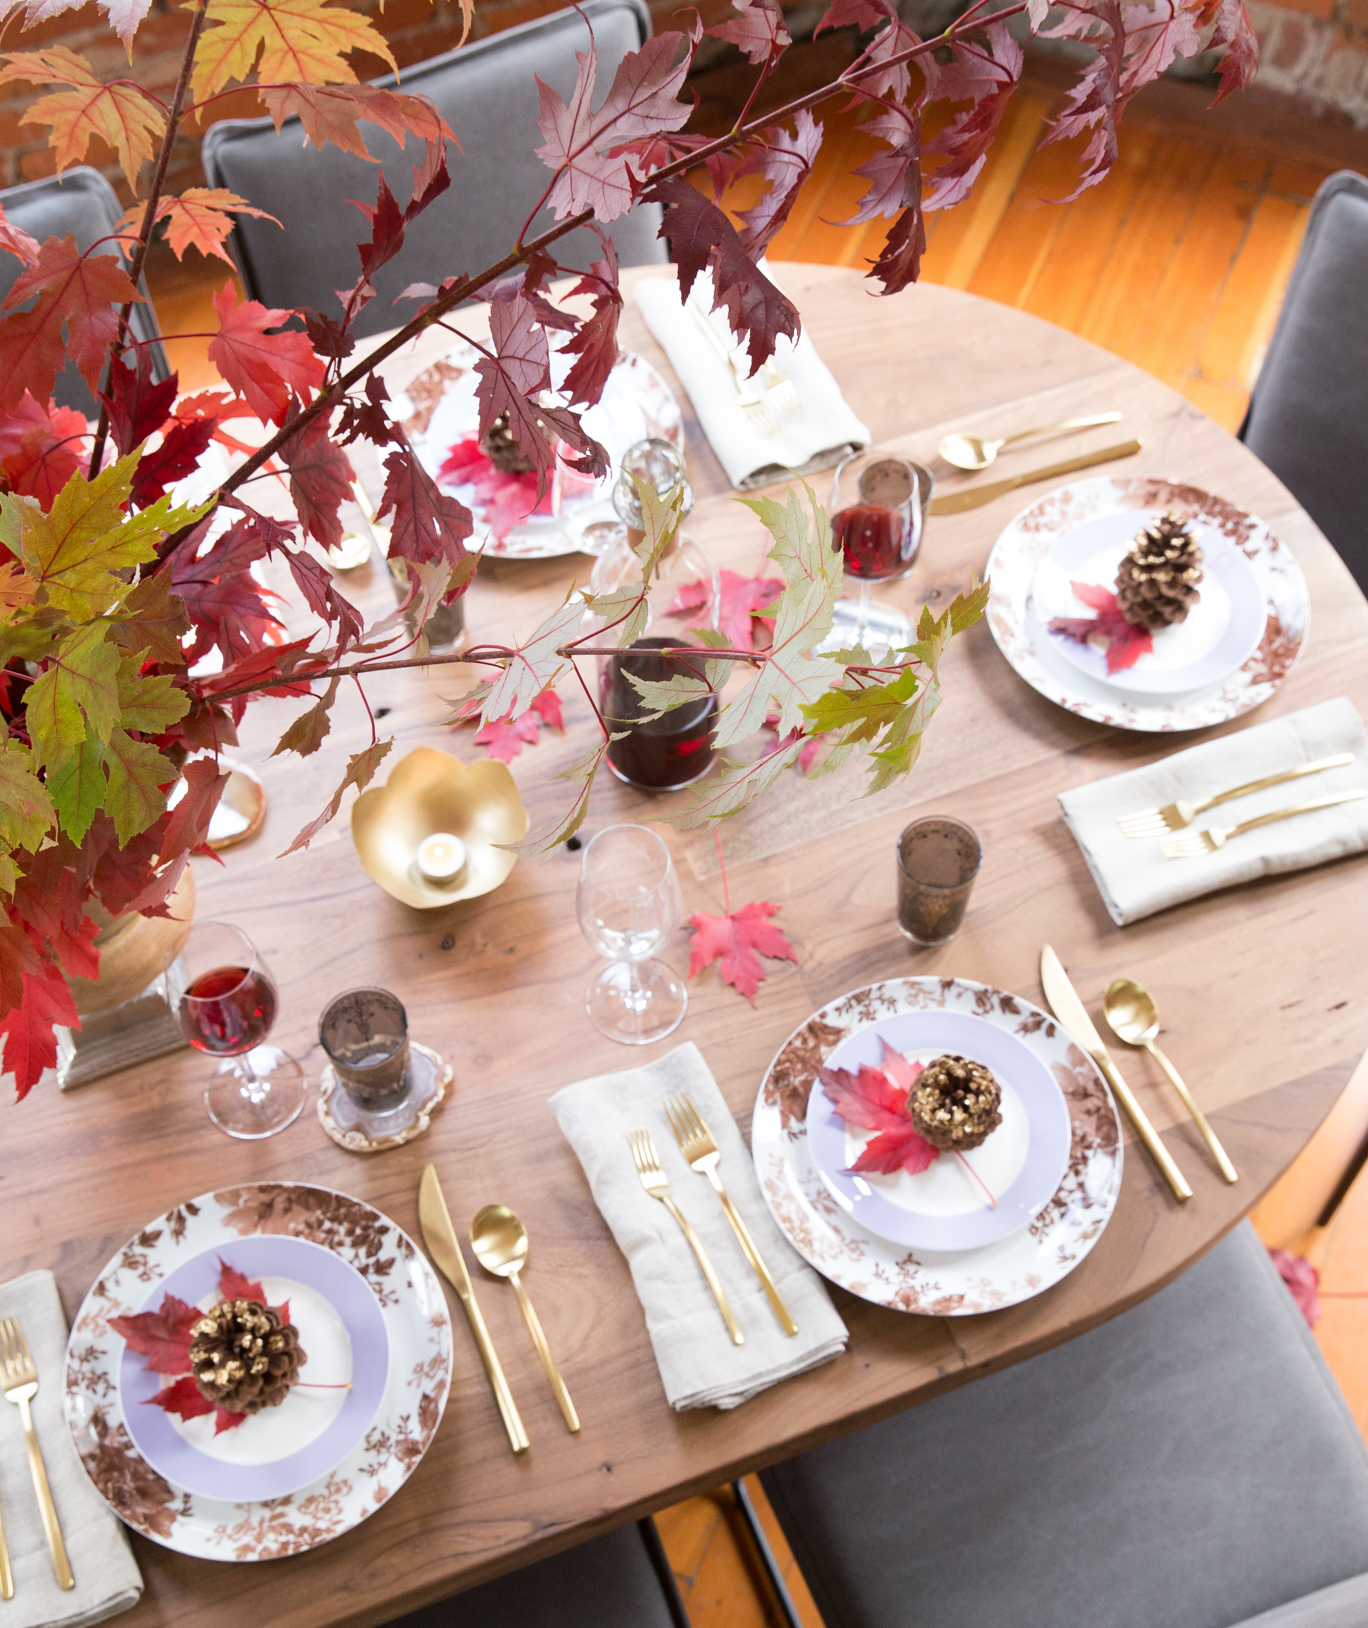 Stunning Fall Foliage Centerpiece